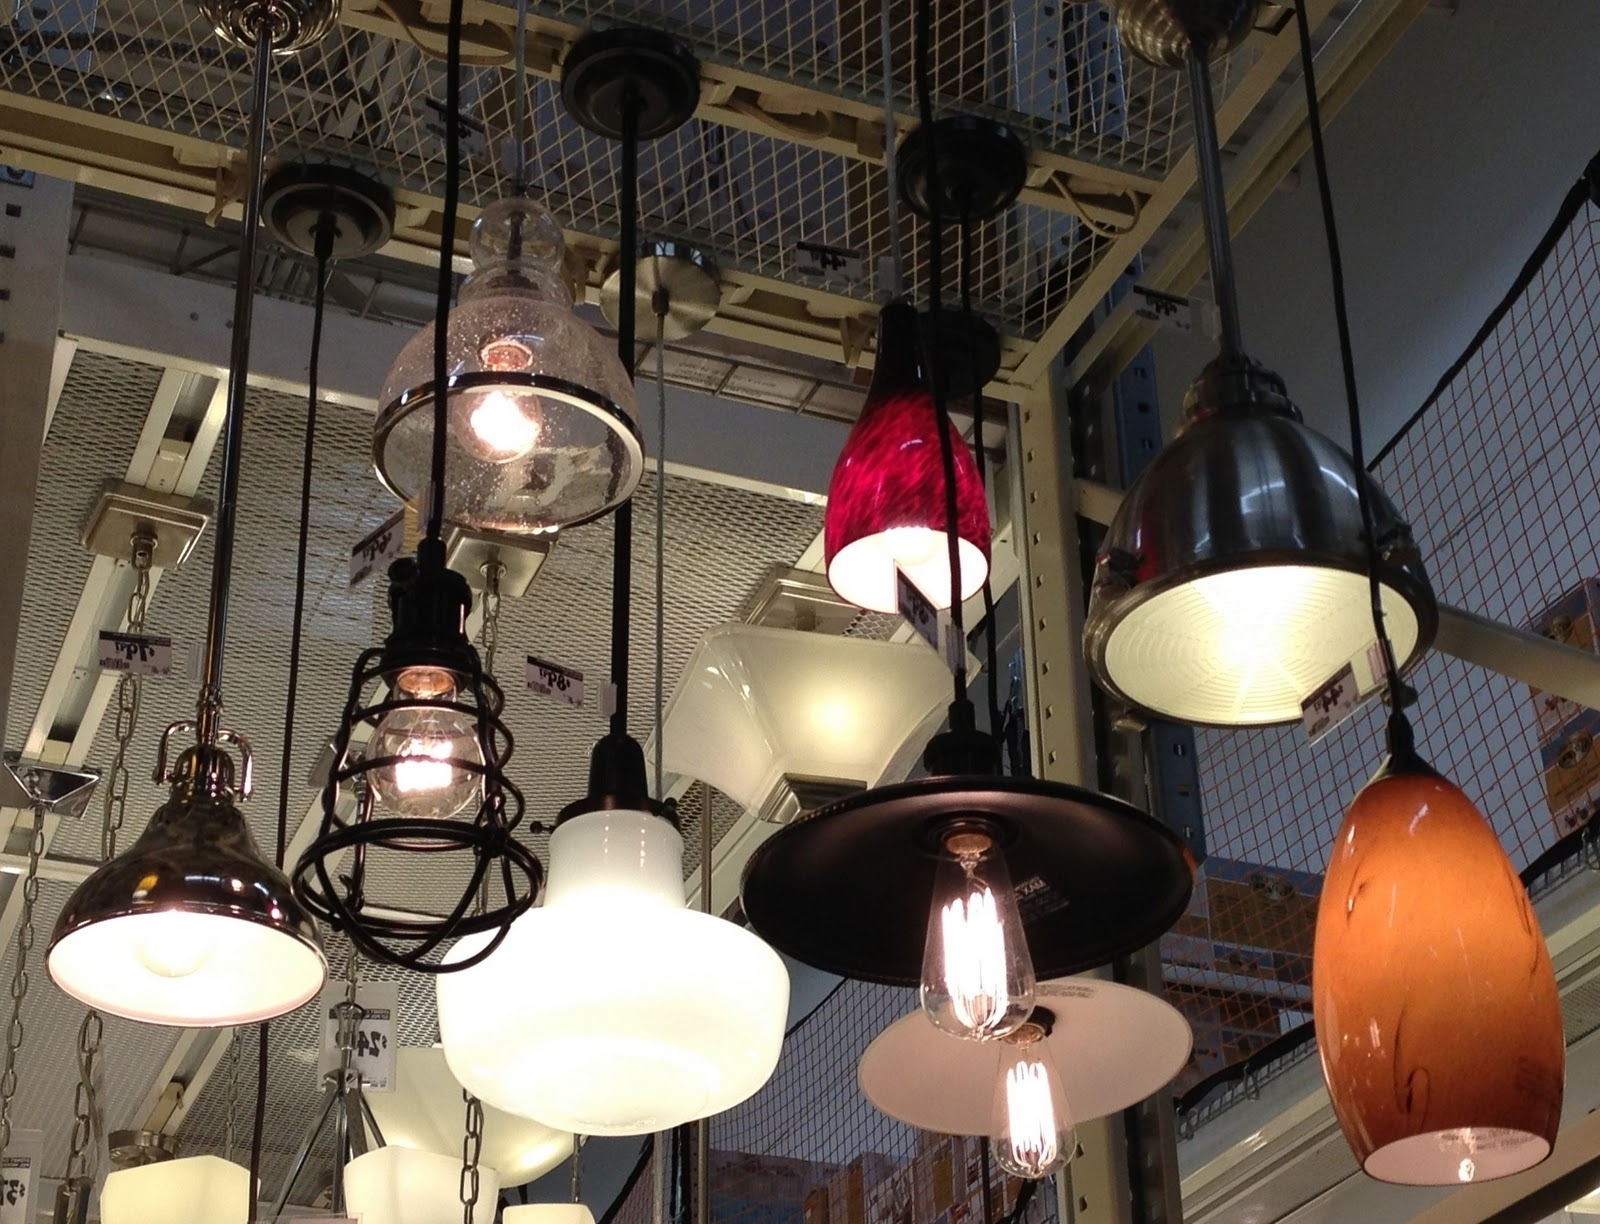 Preferred Outdoor Ceiling Lights At Home Depot Intended For Some Option Home Depot Pendant Lights Decorative — Joanne Russo (View 17 of 20)